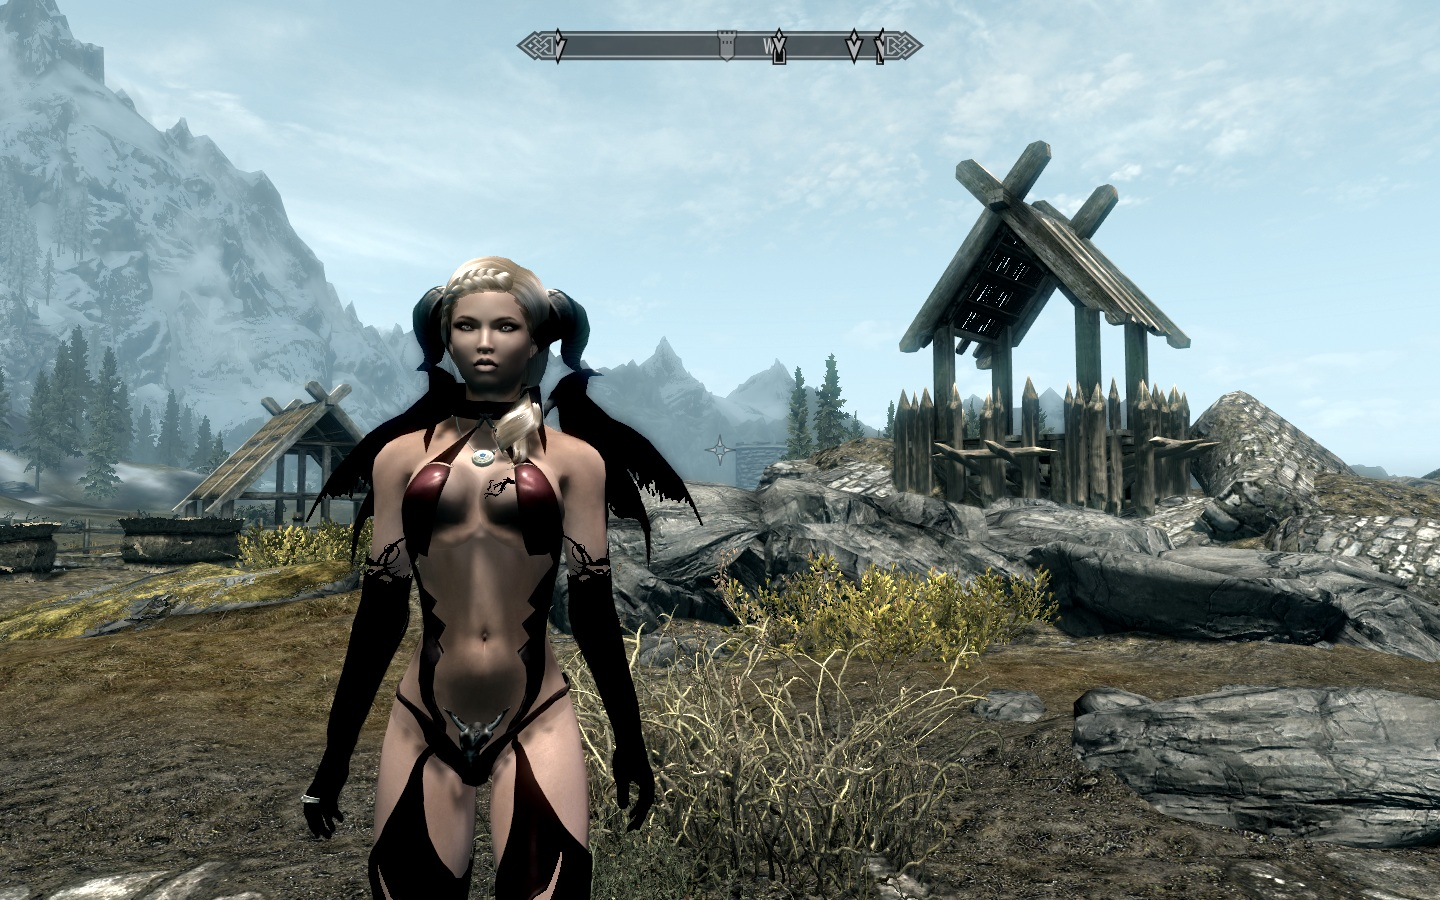 Sexy armor mods sexy pictures